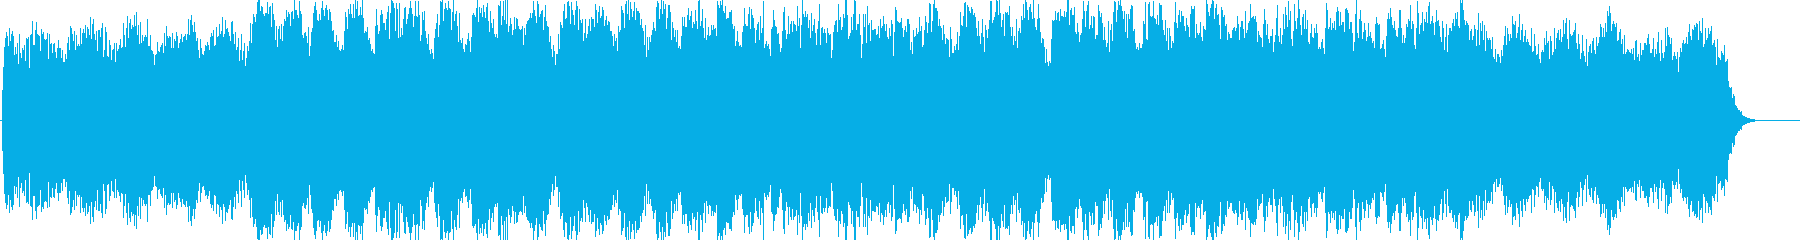 Transparent and gentle BGM's reproduced waveform